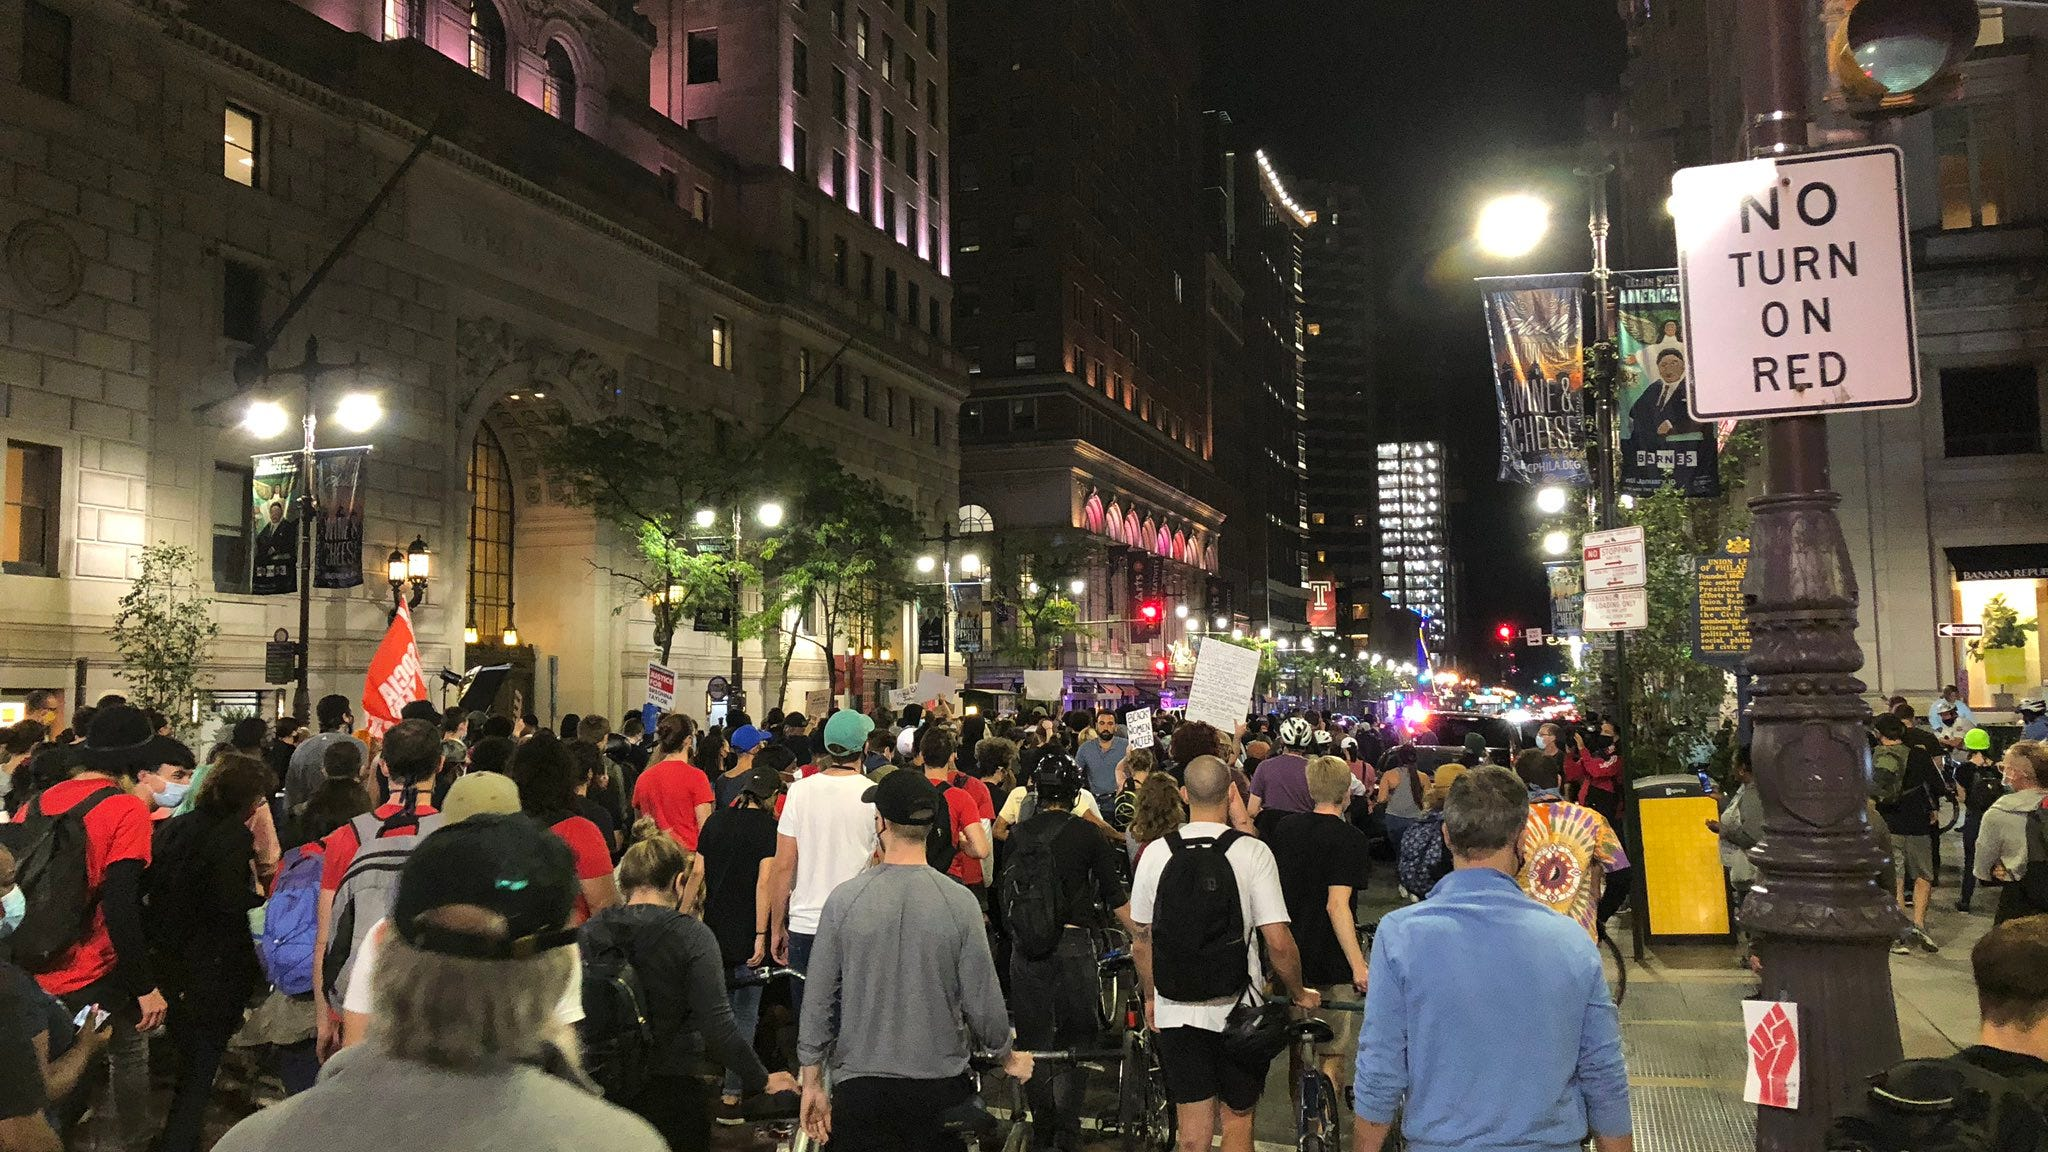 Philly protesters call for police reform following grand jury decision in Breonna Taylor case